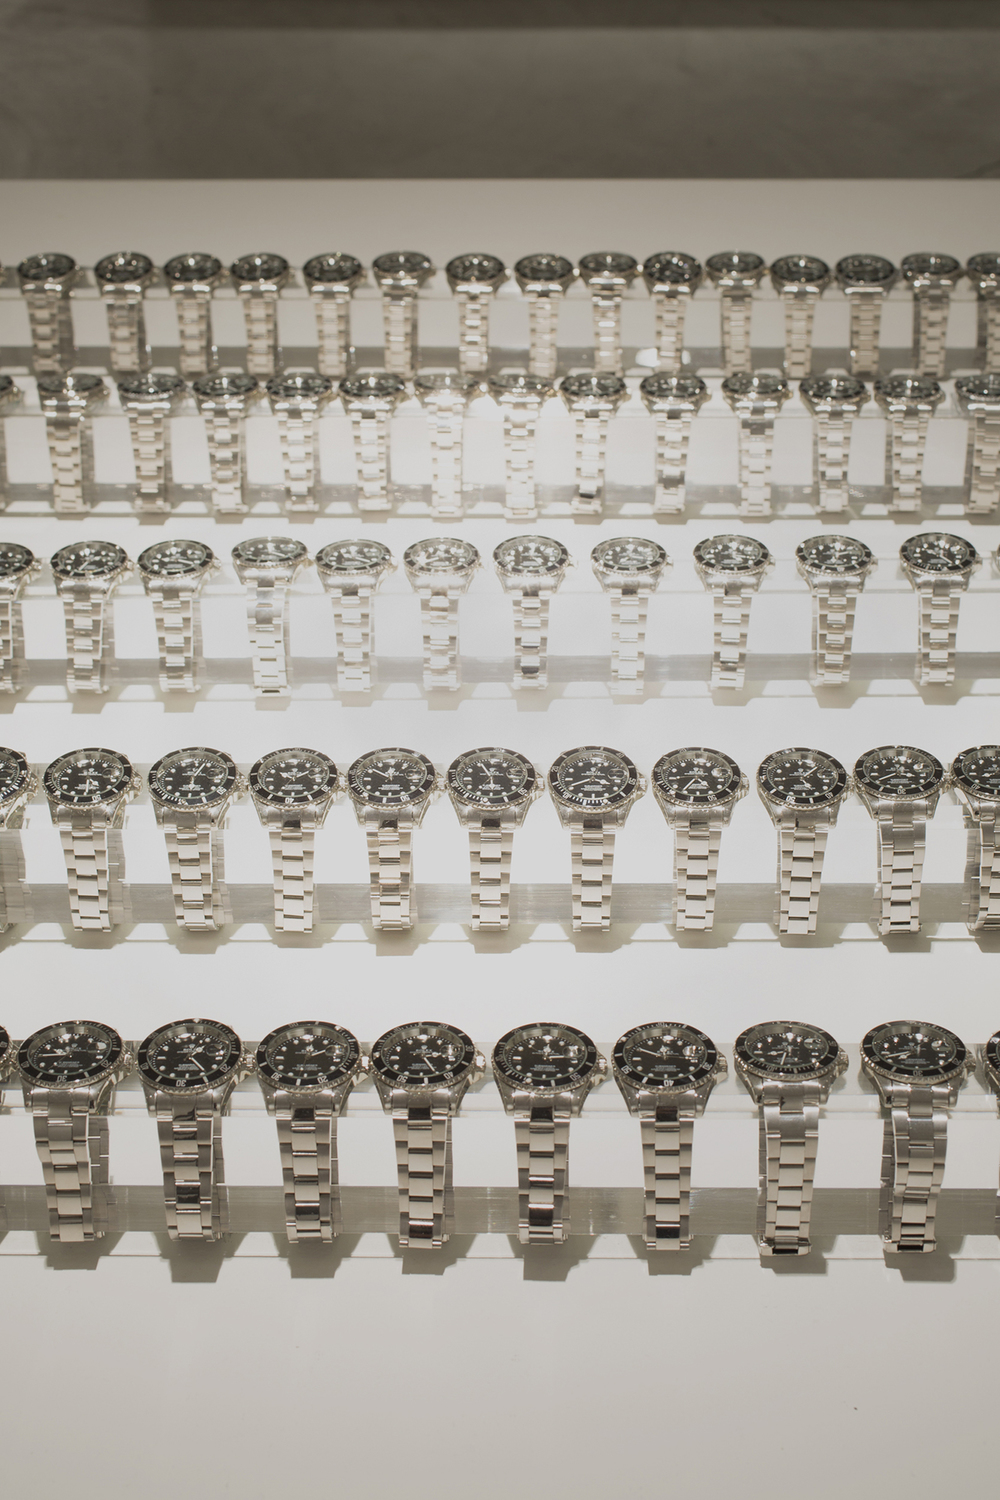 Among the 100 watches within this installation, only one is authentic.